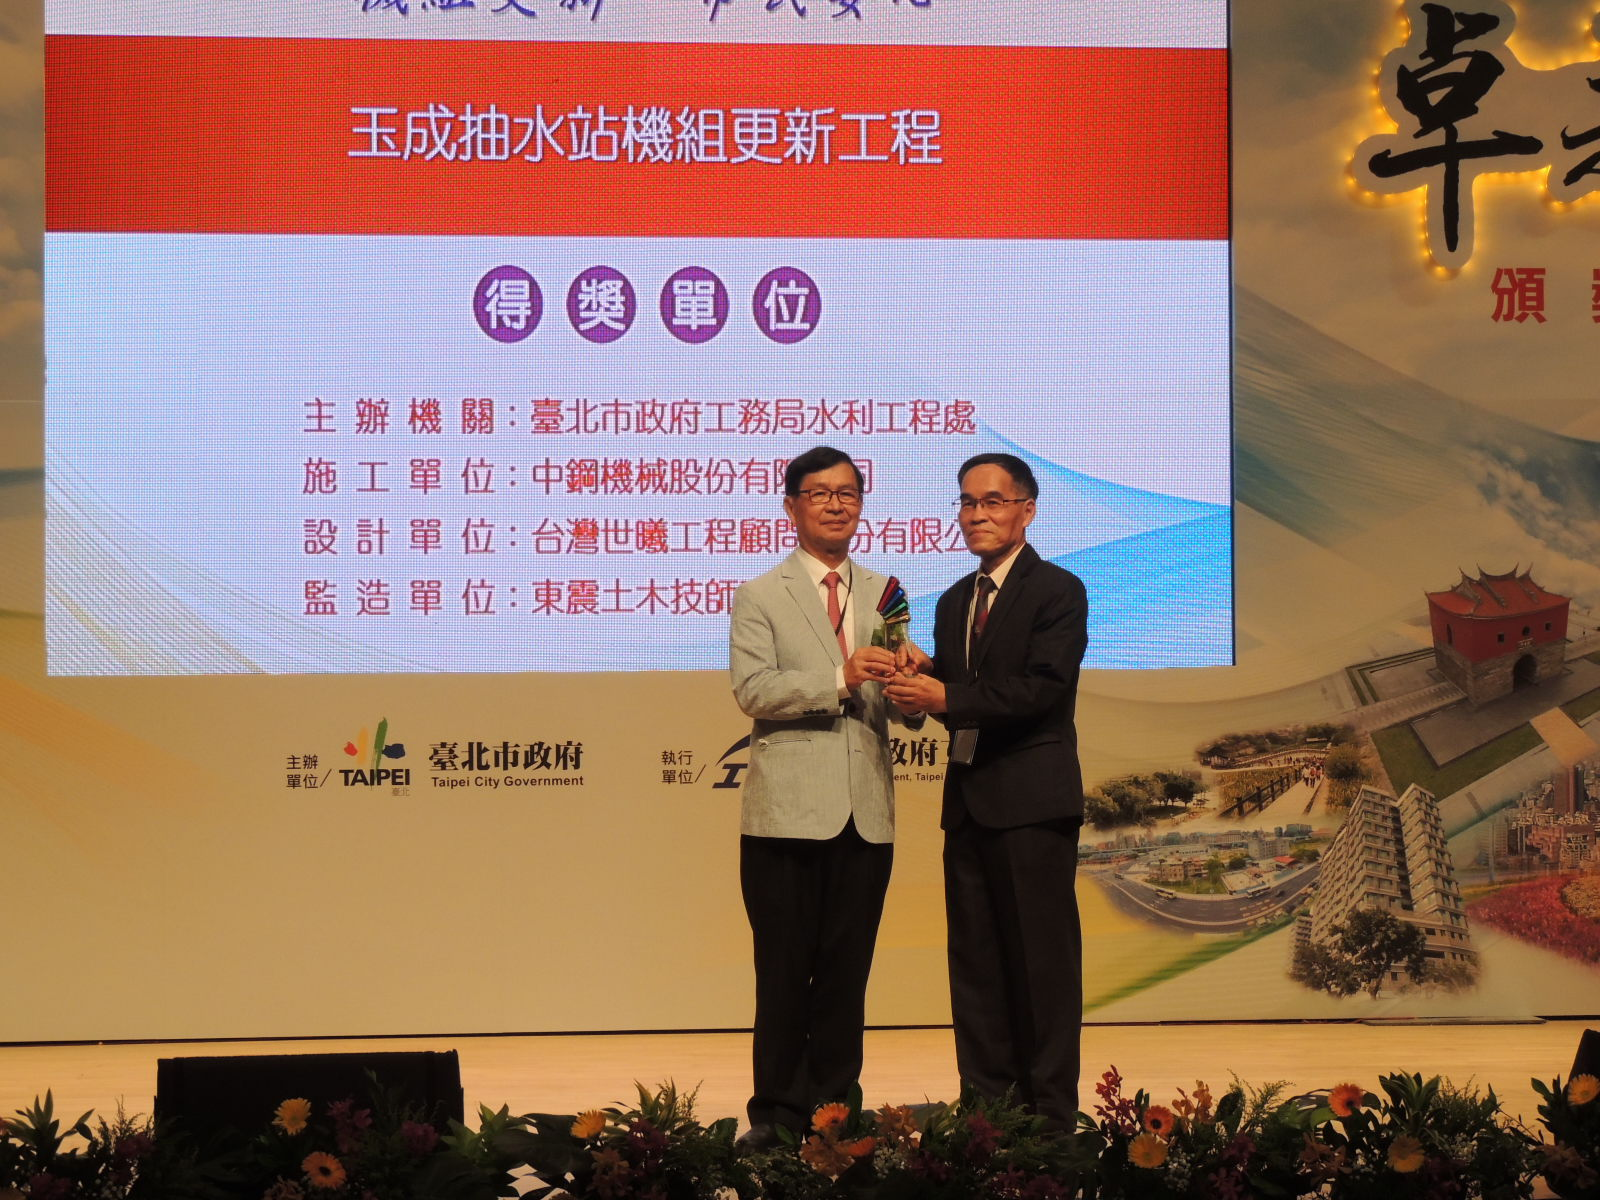 Congratulations to the team of the Yucheng Pumping Station Pump Renewal Project for winning the Distinguished Public Construction Award. Director Tseng-Tai Li of the Administration Division received t